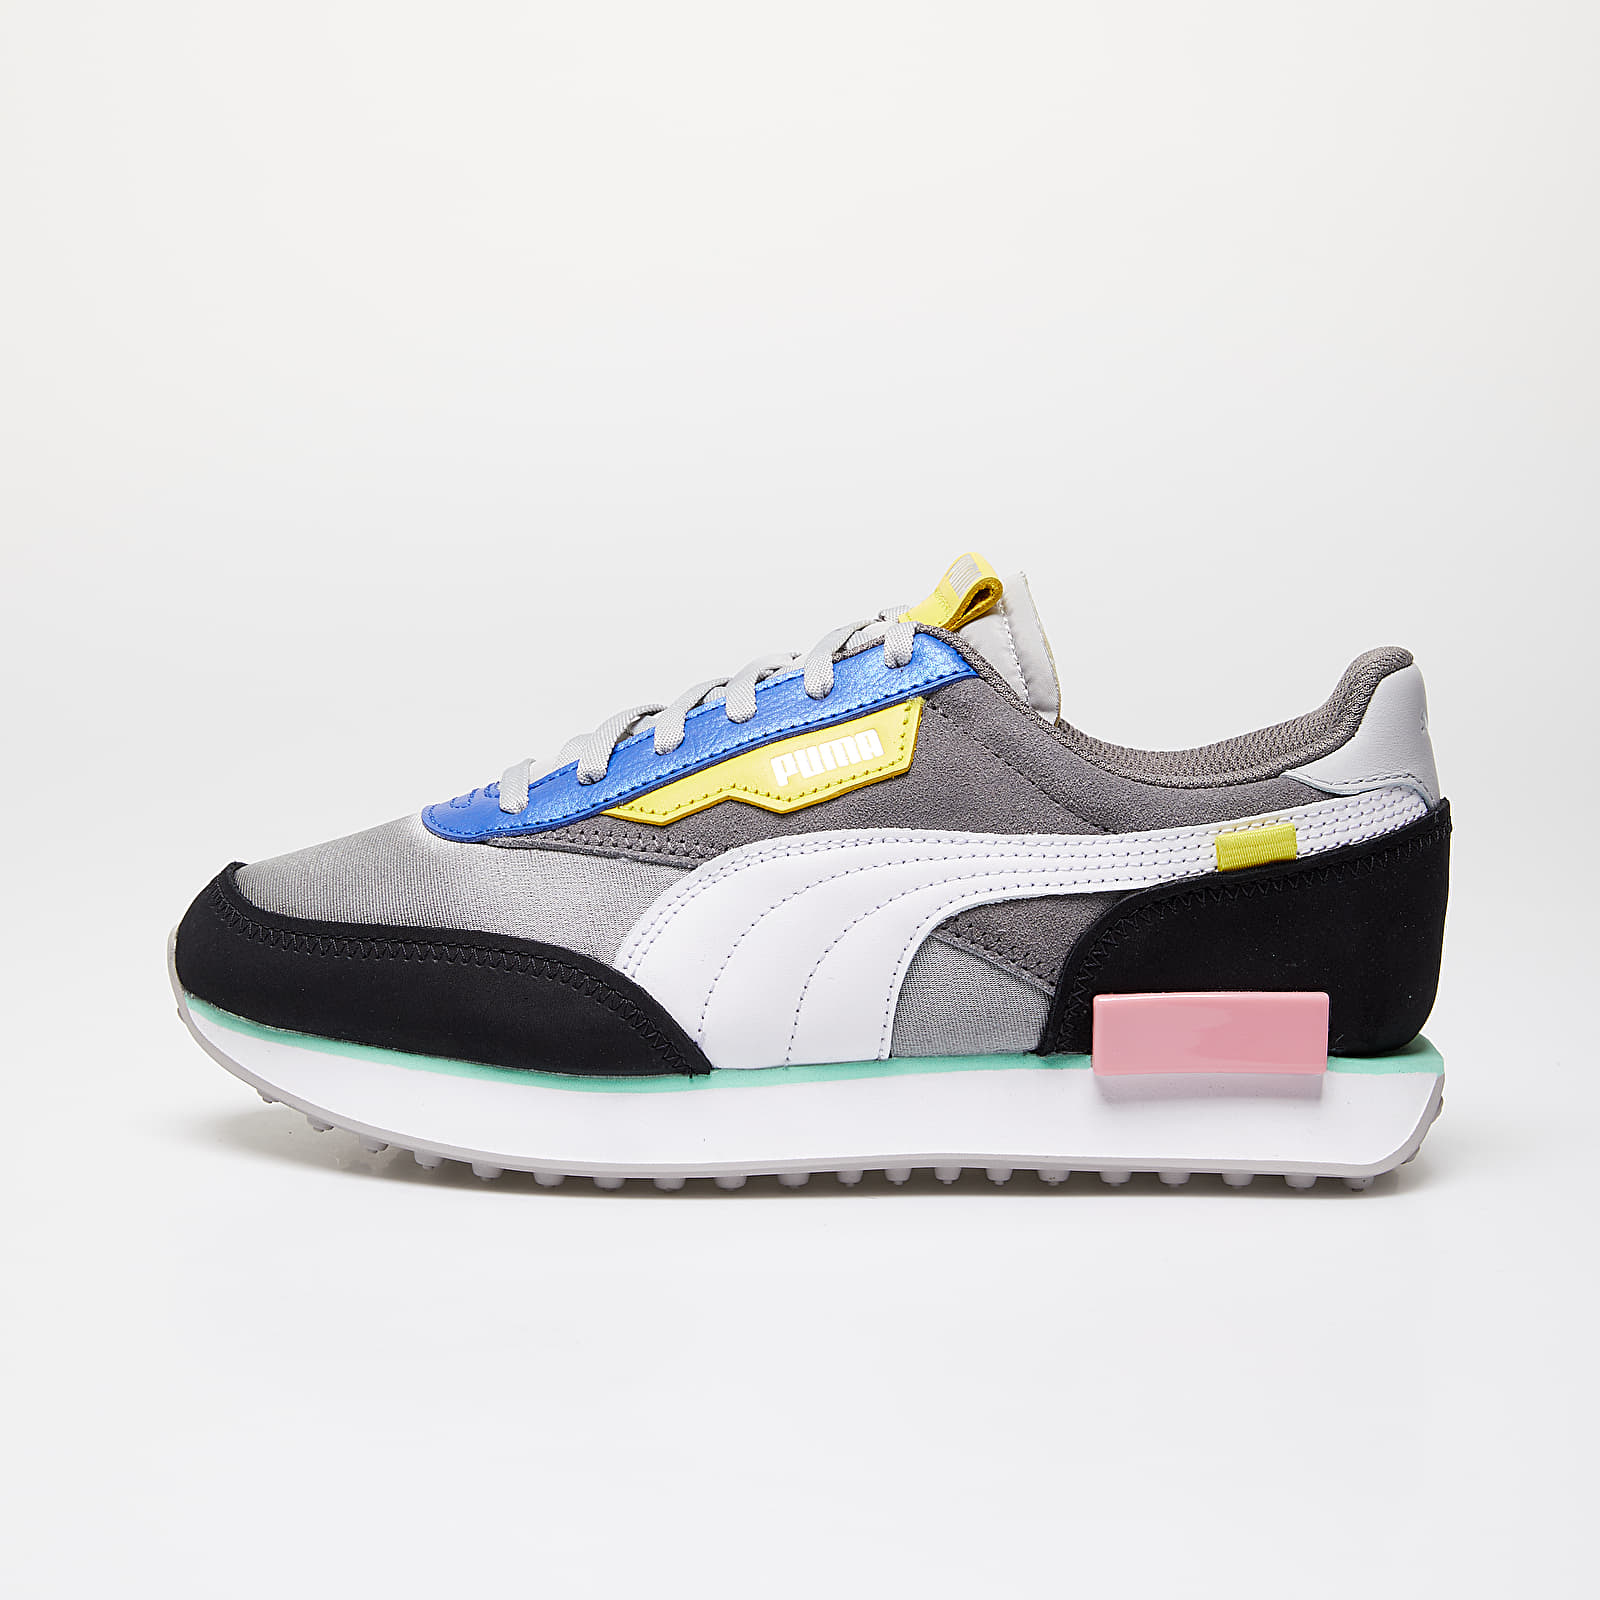 "Puma Future Rider Royale Wn""S"